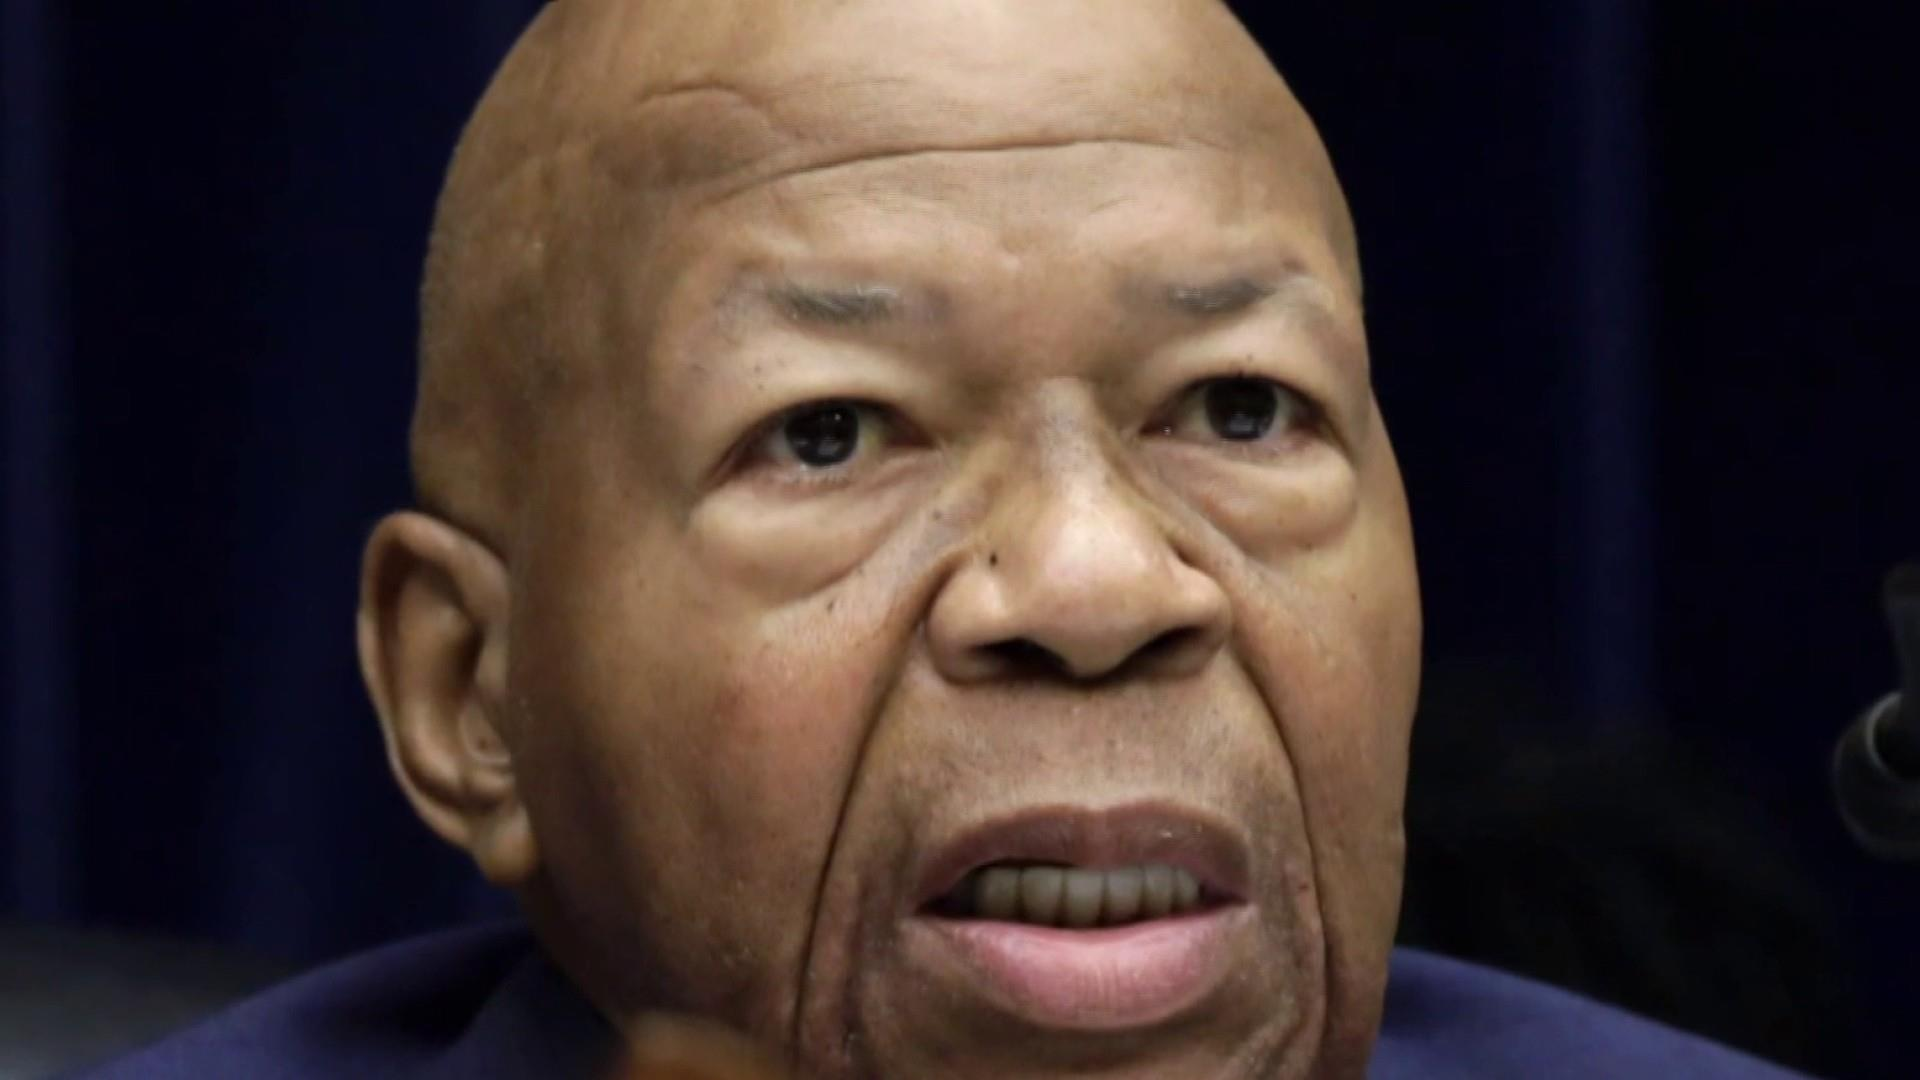 Joe: Rep. Cummings offers a profile in courage